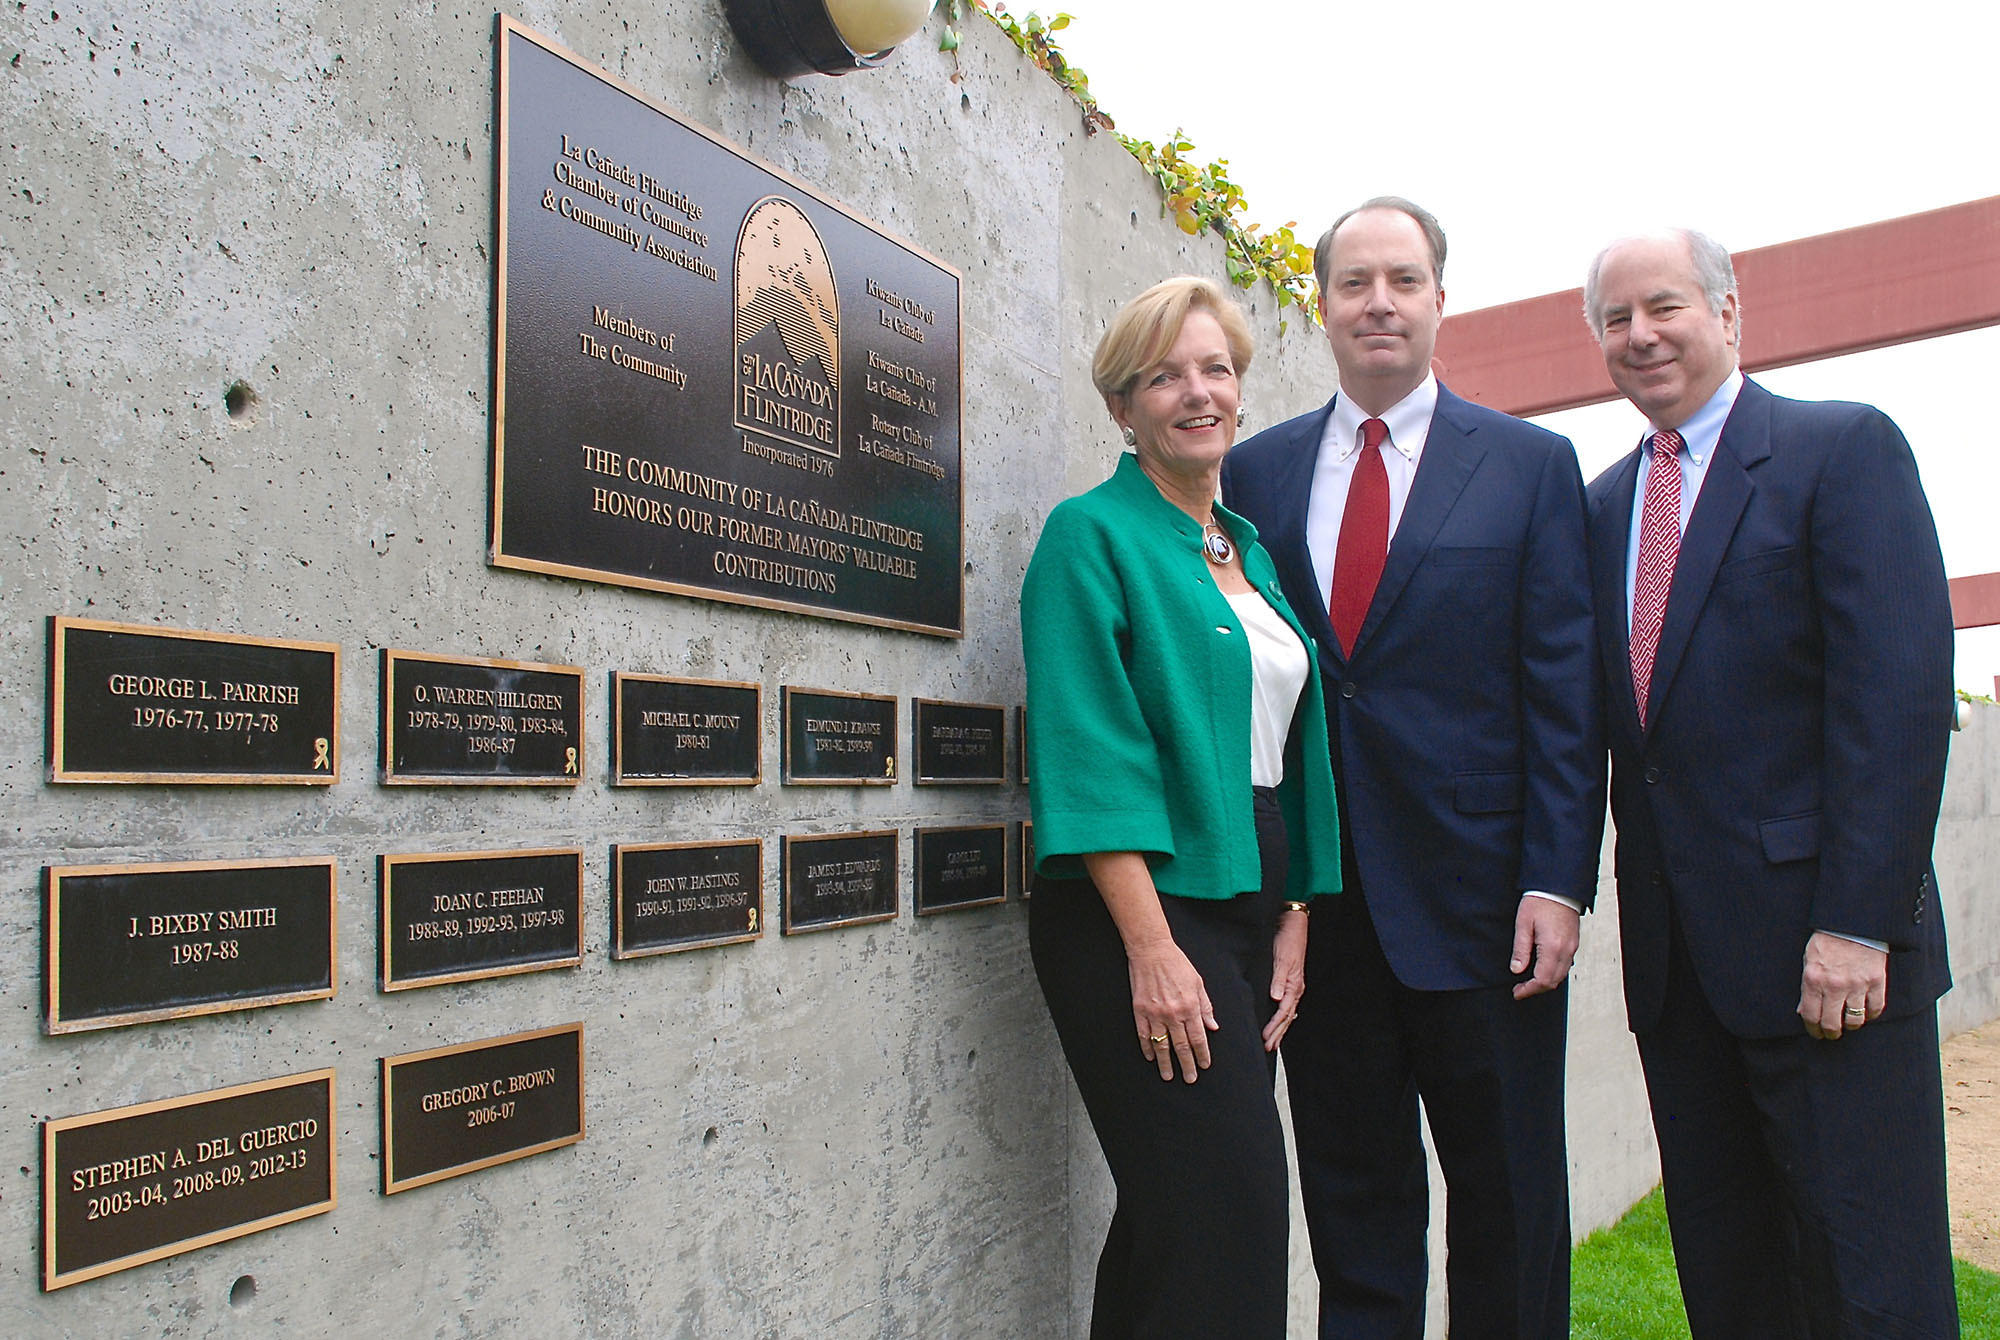 La Cañada Flintridge Mayor Laura Olhasso joins two former mayors of the city, Steve Del Guercio and Greg Brown, at Memorial Park on March 3 for the unveiling of their respective plaques in Mayors' Discovery Park.